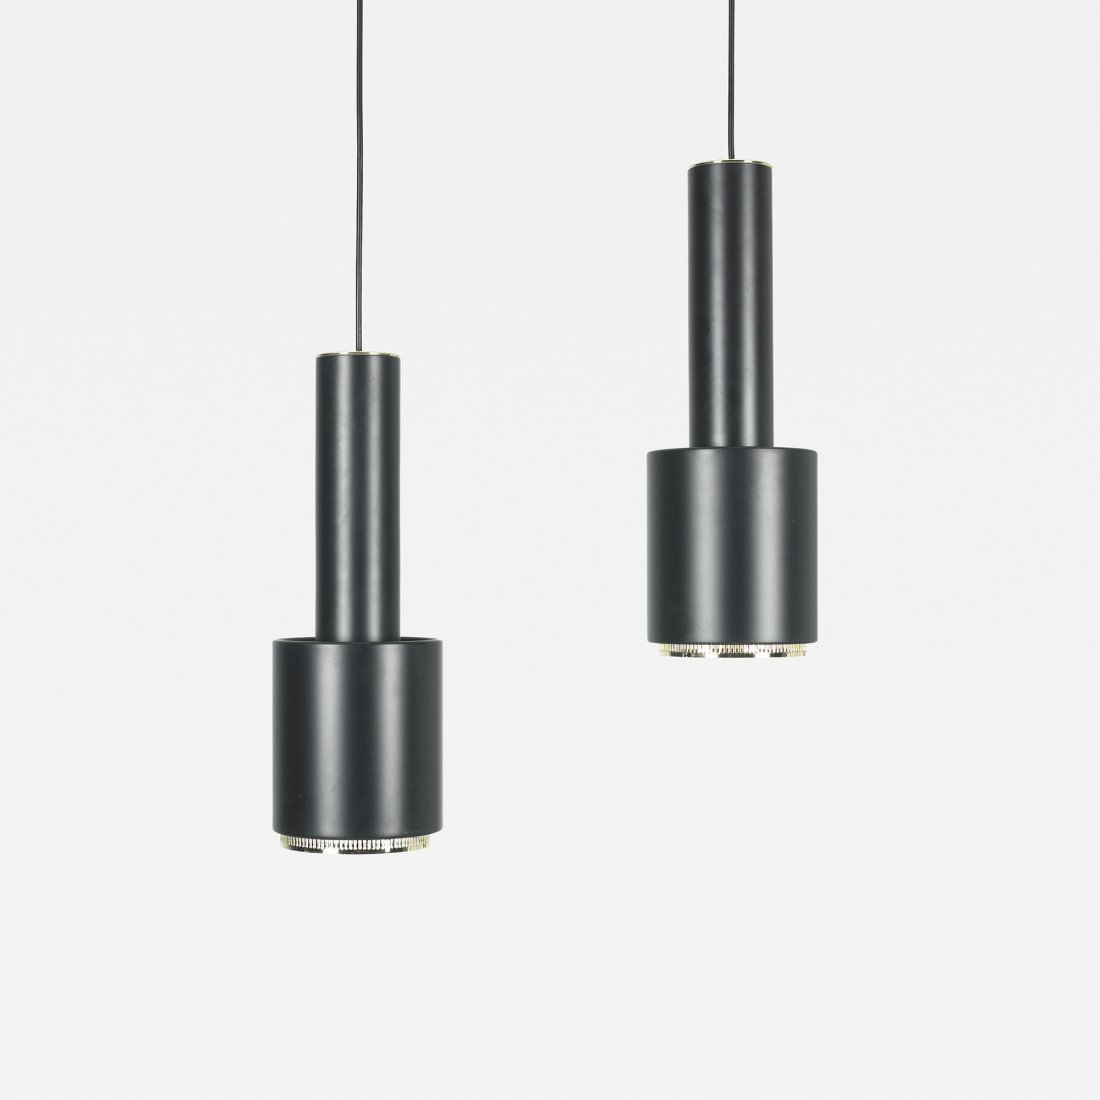 Alvar Aalto pendant lamps model A110, pair